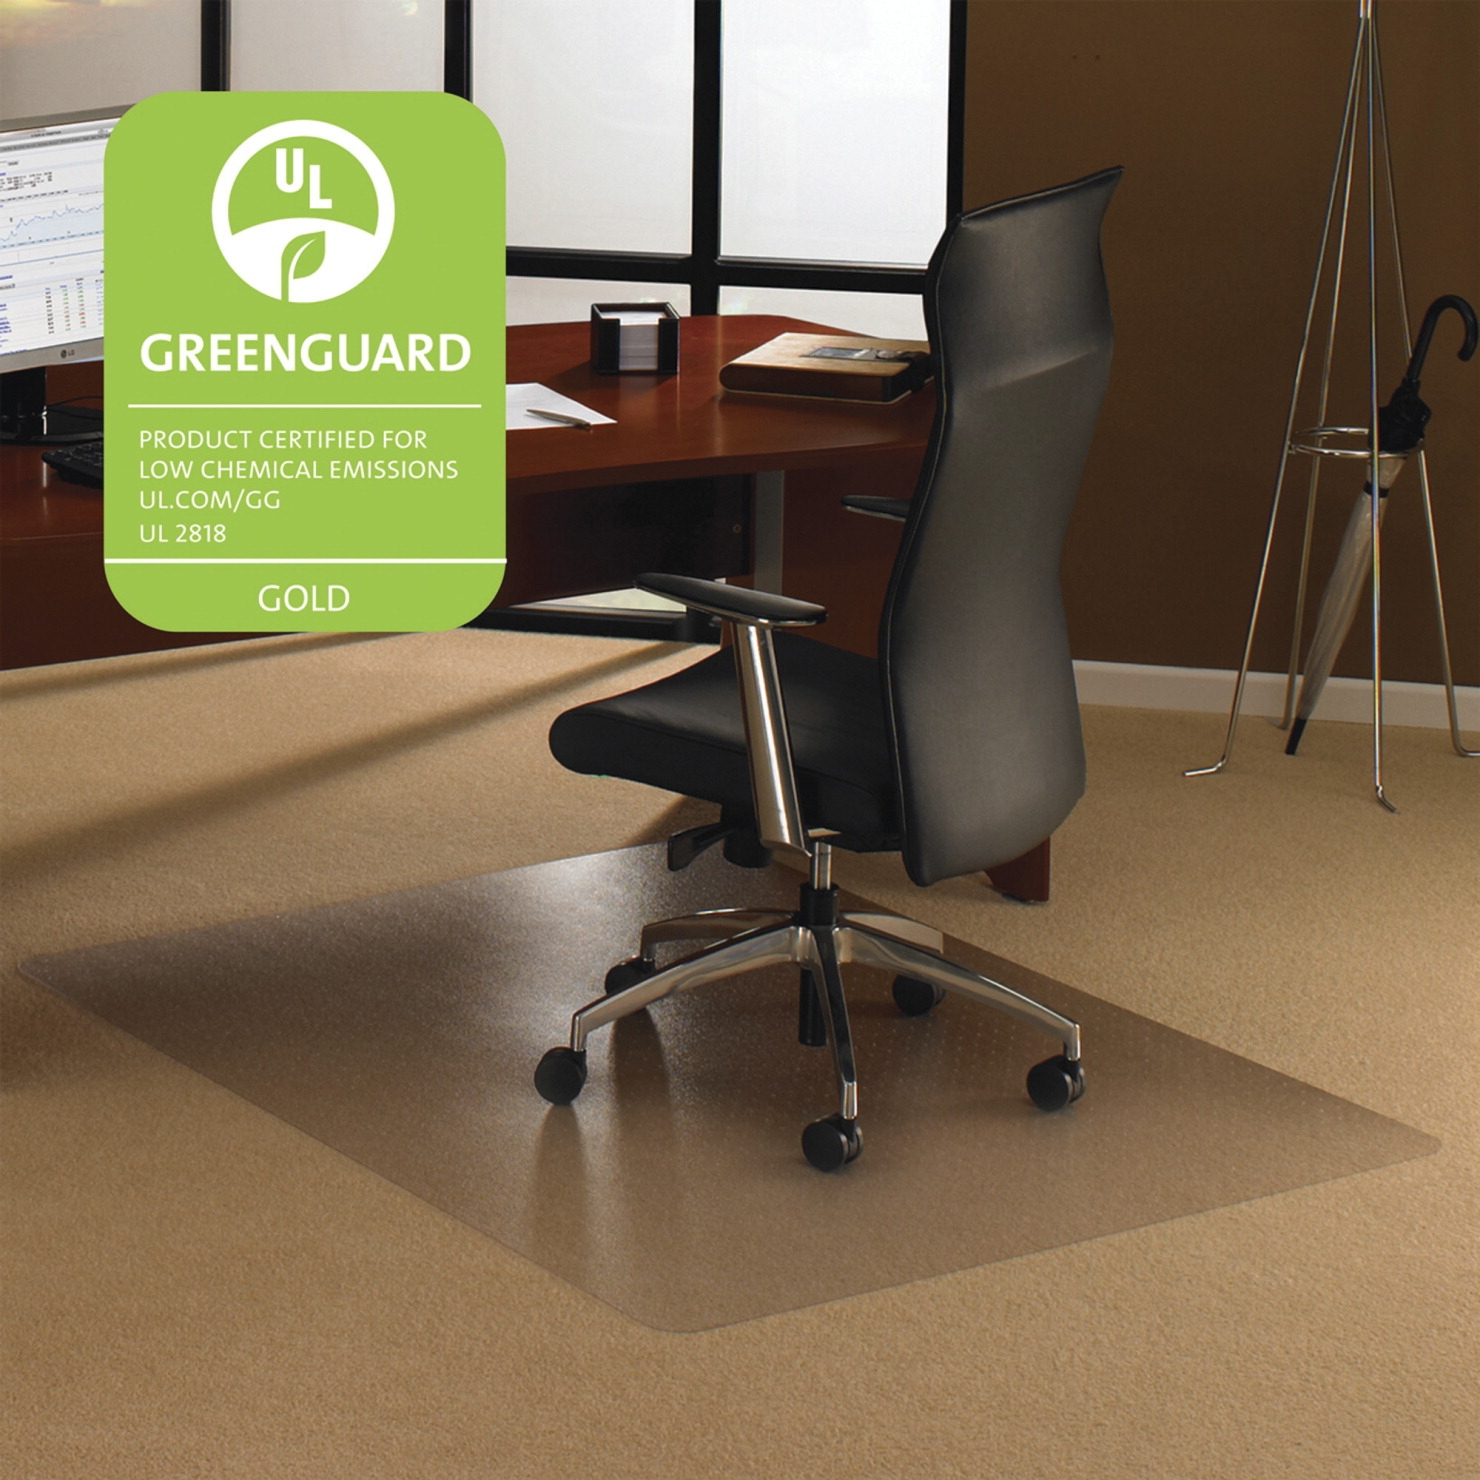 Floortex Carpet Chairmat; Clear; 48 L X 53 W In; 0.11 In Thickness - 1330934 - Facilities Management Bar Stool Set Table Chair Metal State Logo Chairs Wood Metal Chairs 1330934